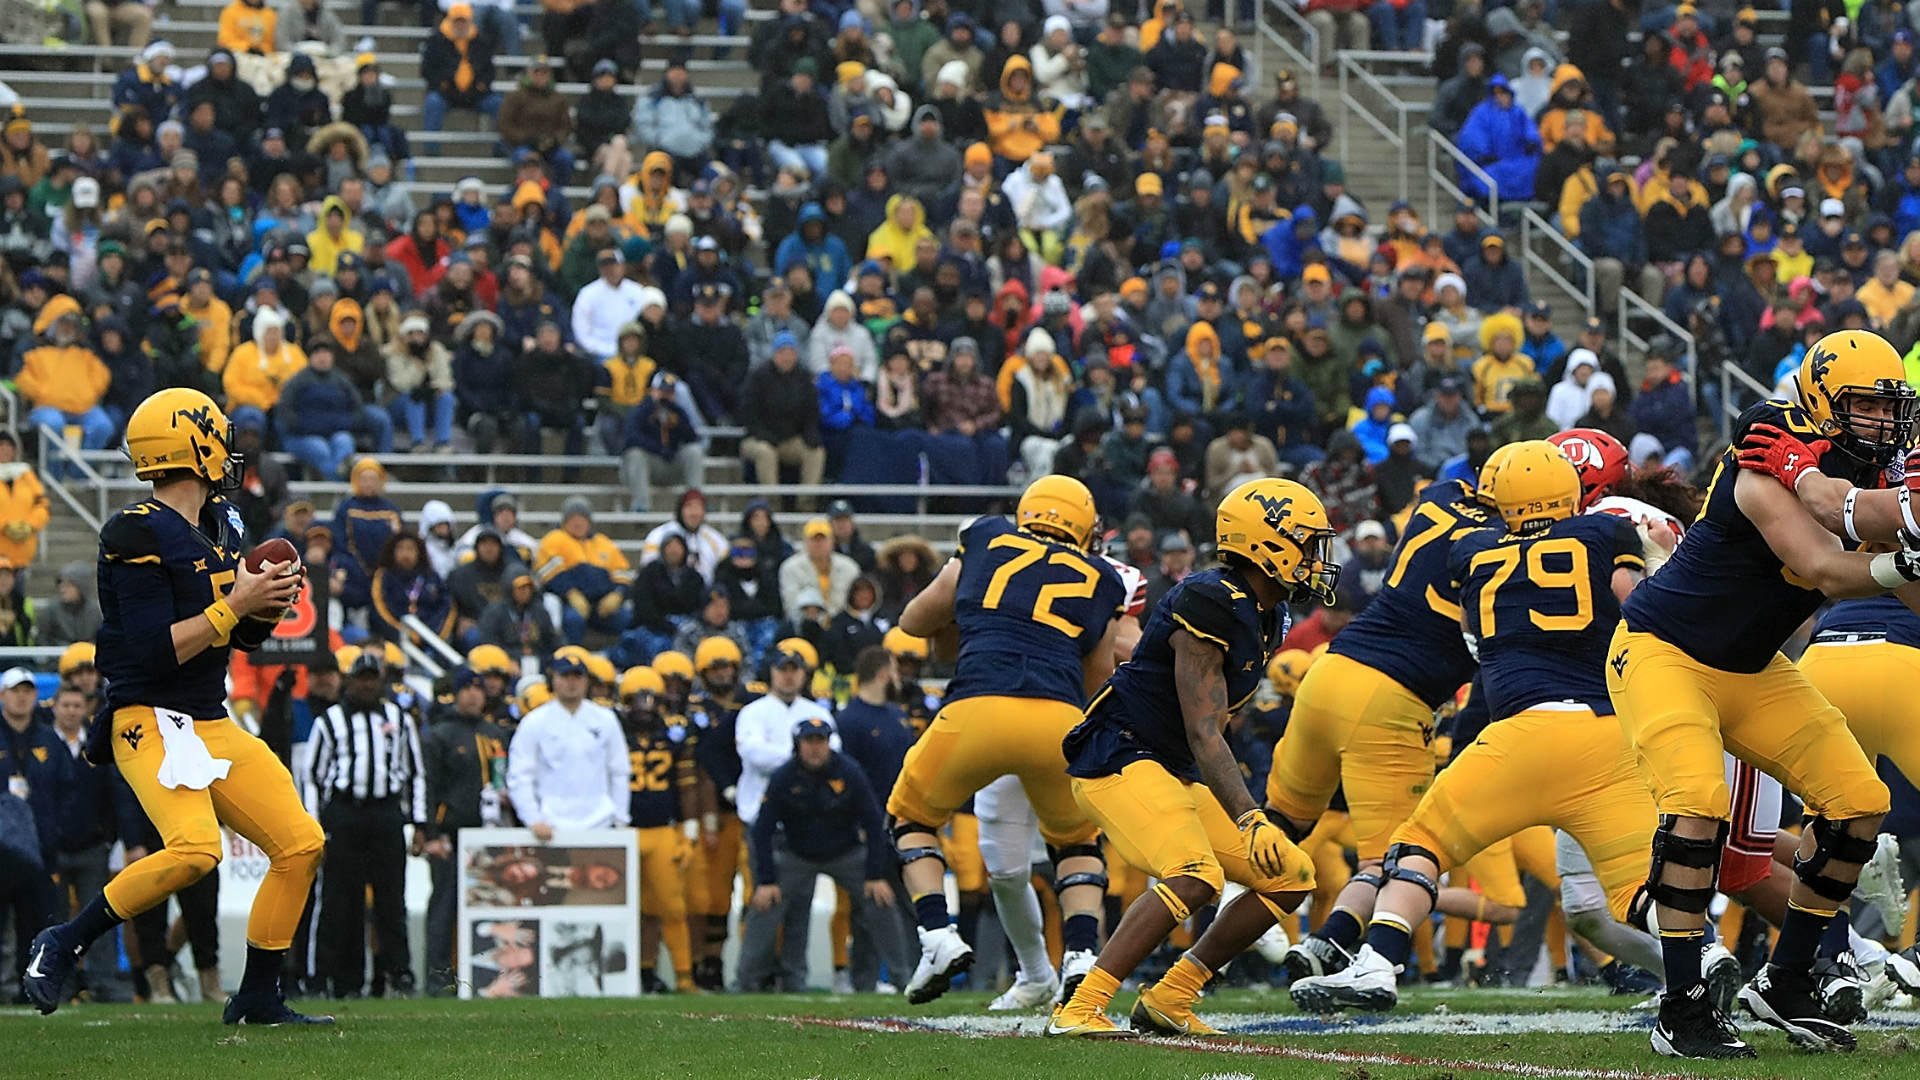 Need West Virginia Mountaineers Football Tickets TicketCity offers 100 moneyback guarantee uptodate prices amp event information Over 1 million customers served